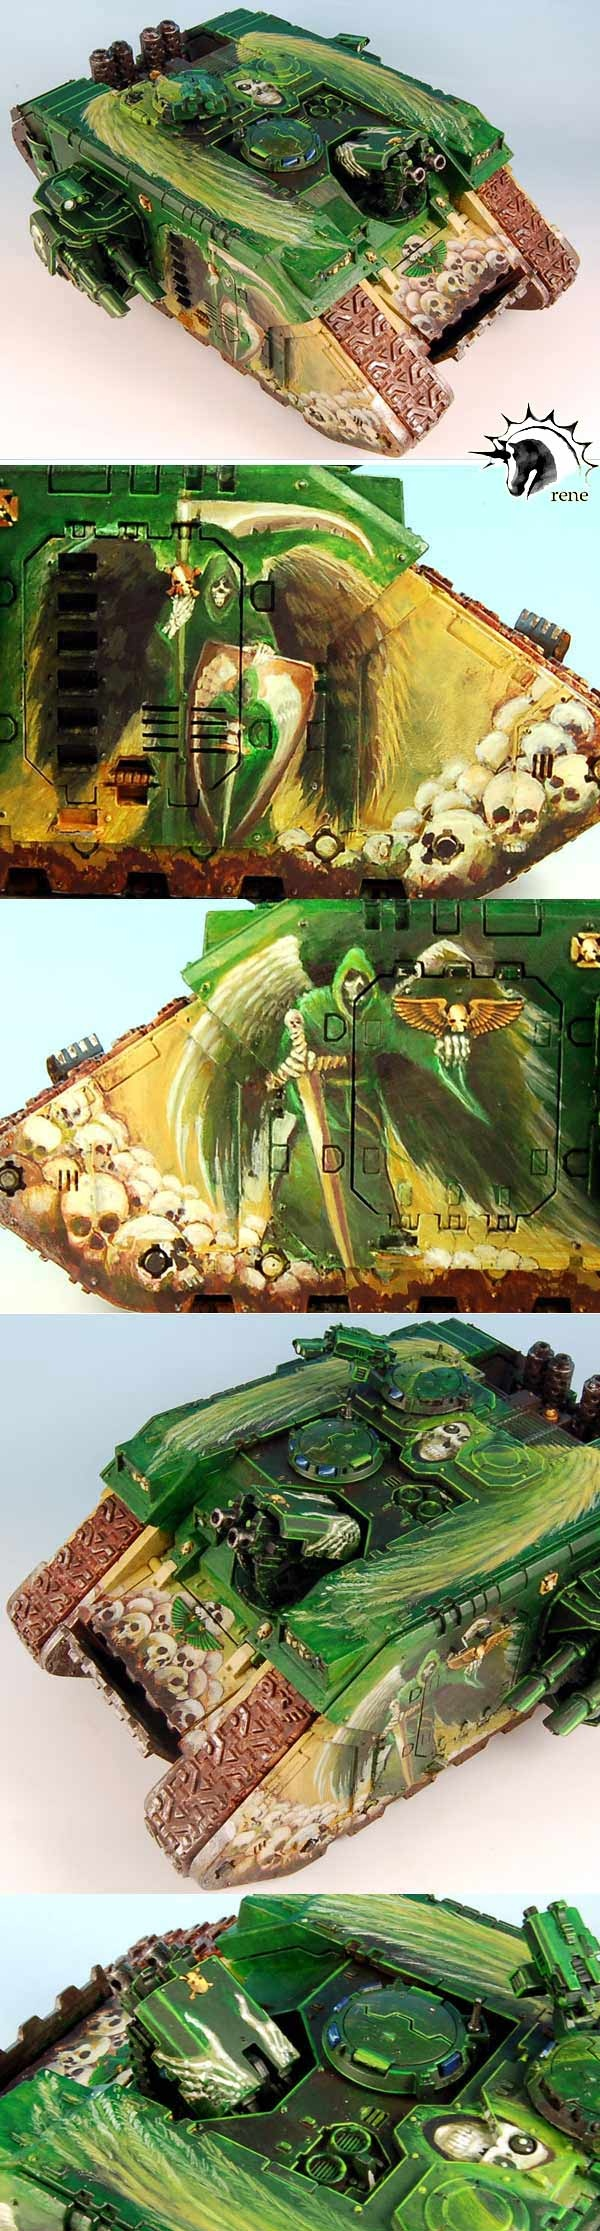 CoolMiniOrNot - WARHAMMER 40K Dark Angels Land Raider by rene  Wow, nice painting